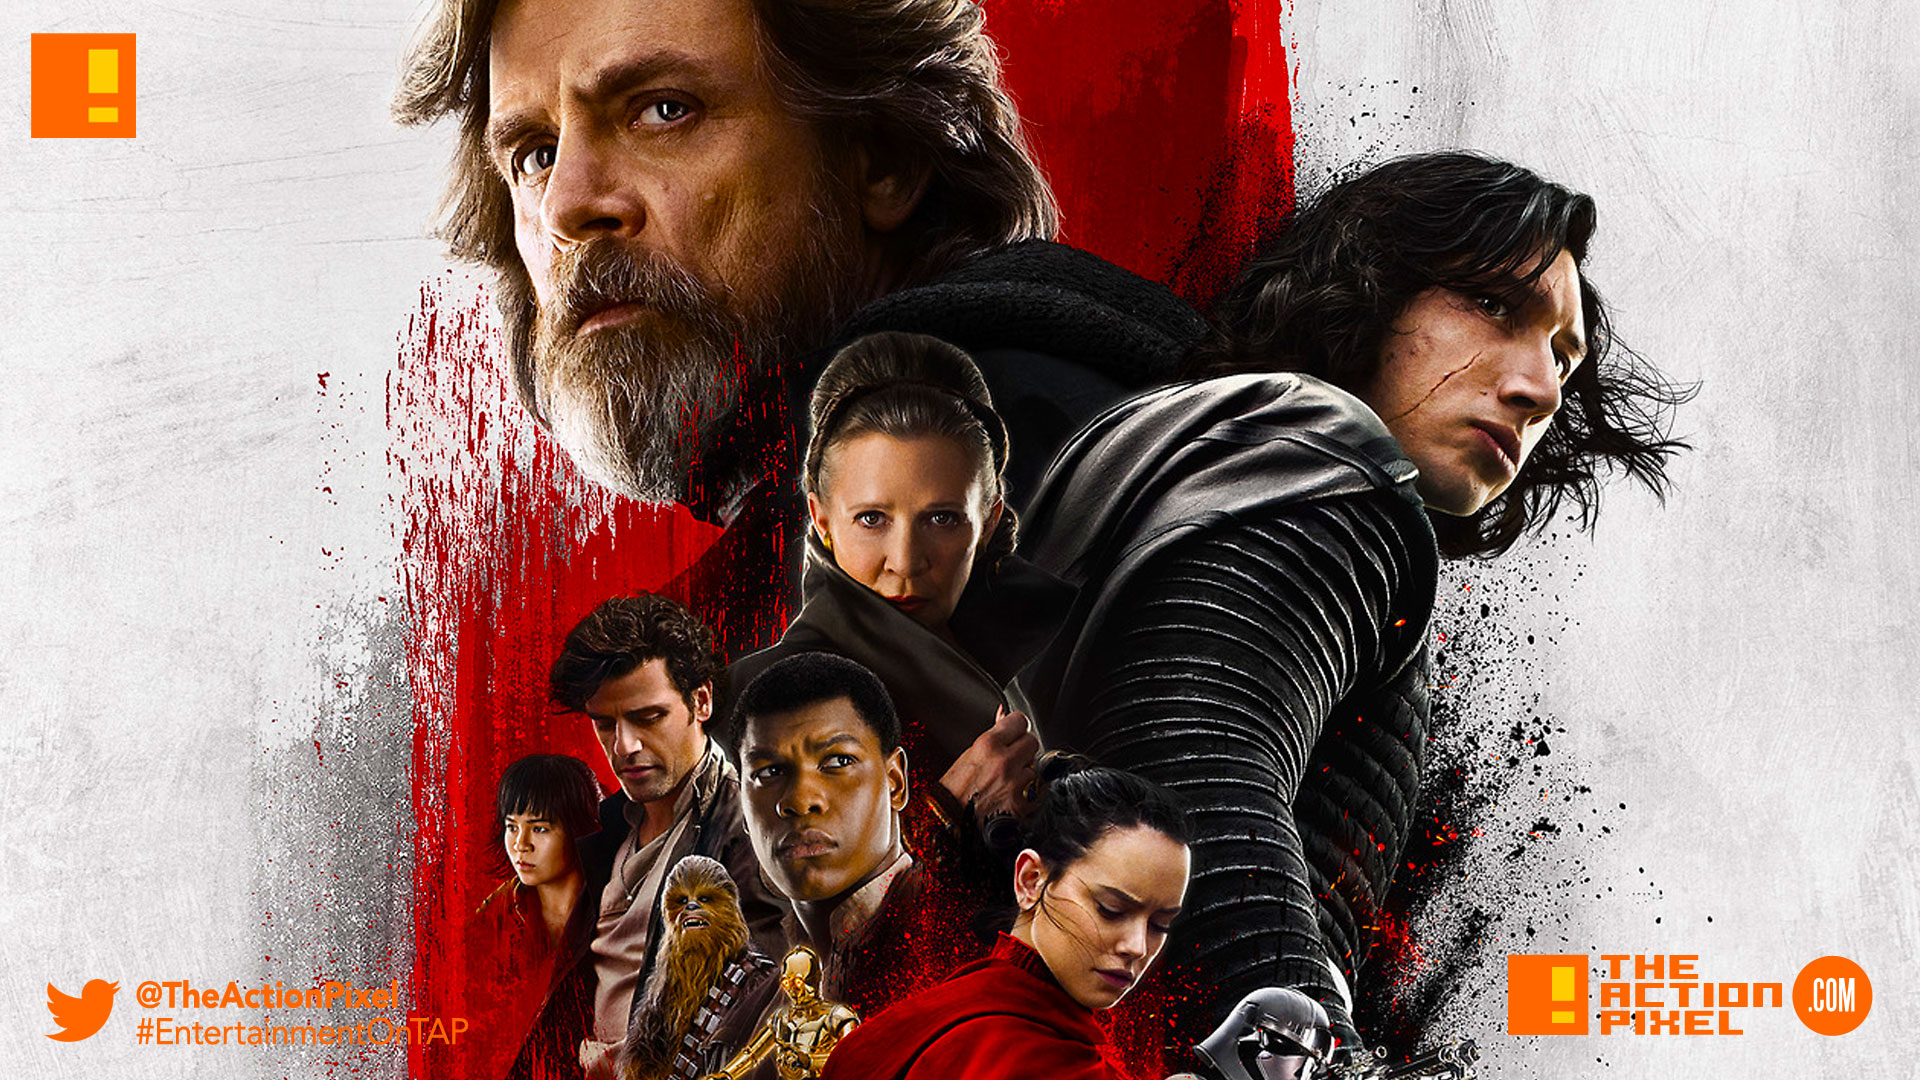 snoke, snoak, the last jedi, star wars, star wars: the last jedi, mark hamill, luke skywalker, princess leia,carrie fisher, rey,the action pixel, entertainment on tap,kylo ren, photographs,image,poster ,awake, trailer, imax, poster